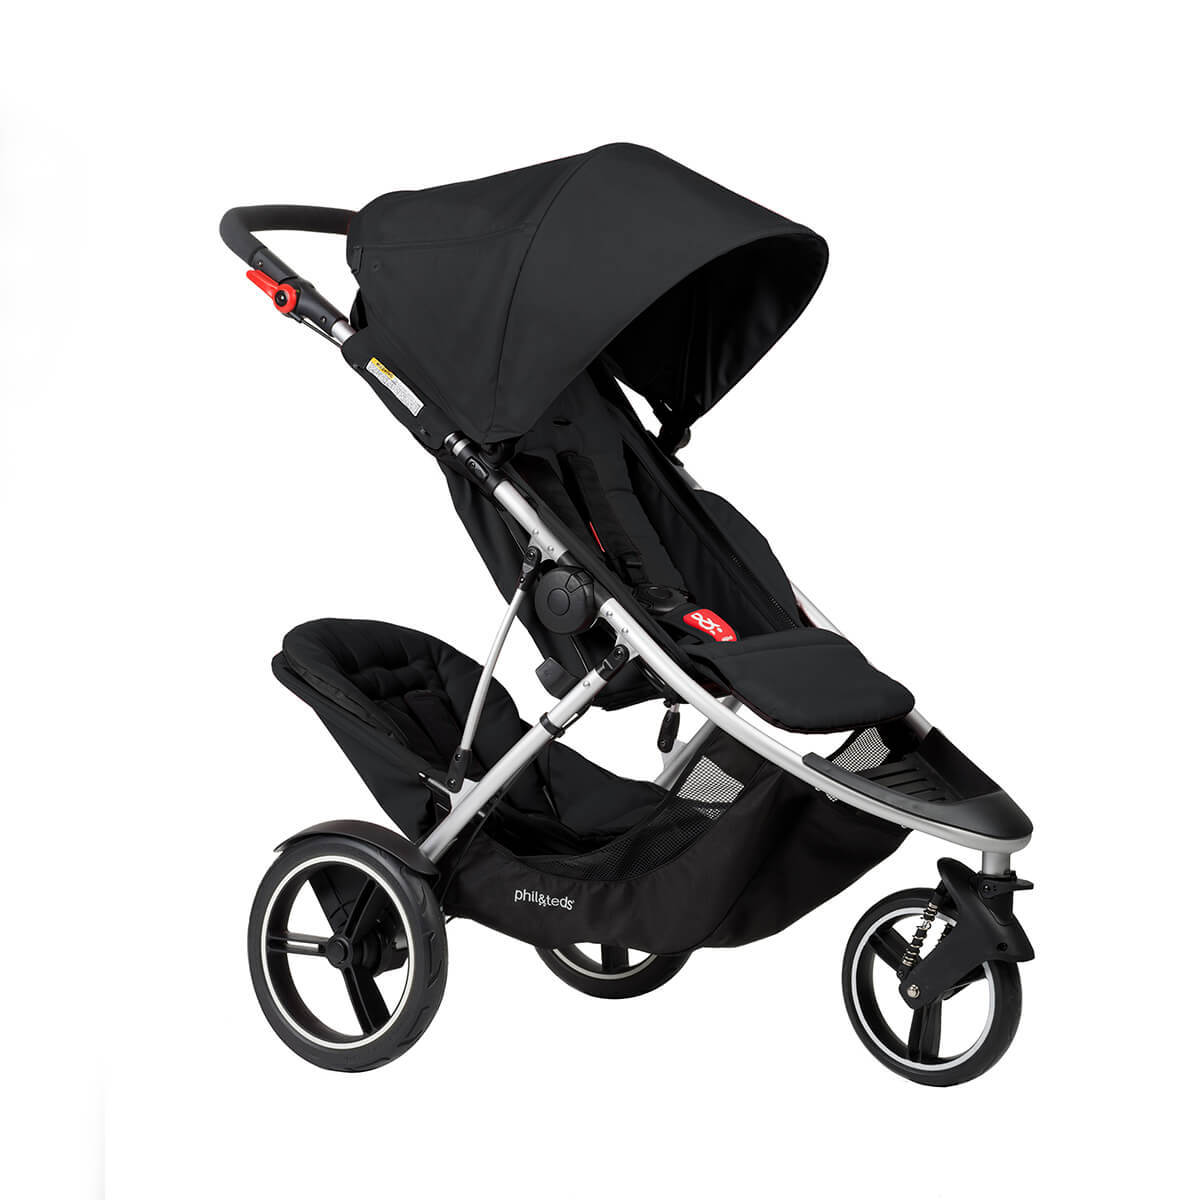 phil&teds Dash buggy Black  フィルアンドテッズ ダッシュ